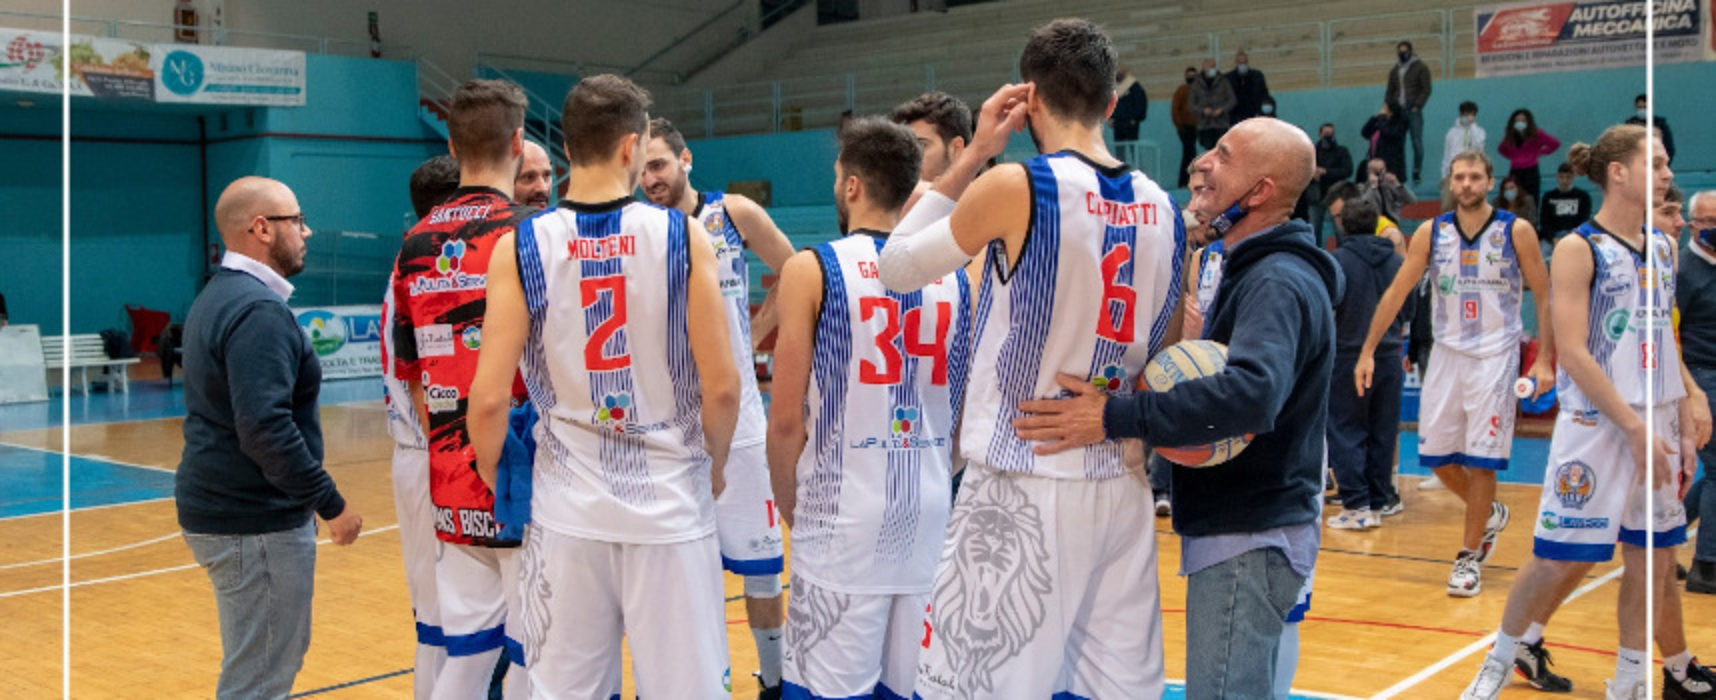 Basket, Alpha Pharma Bisceglie batte Catanzaro e vola in classifica